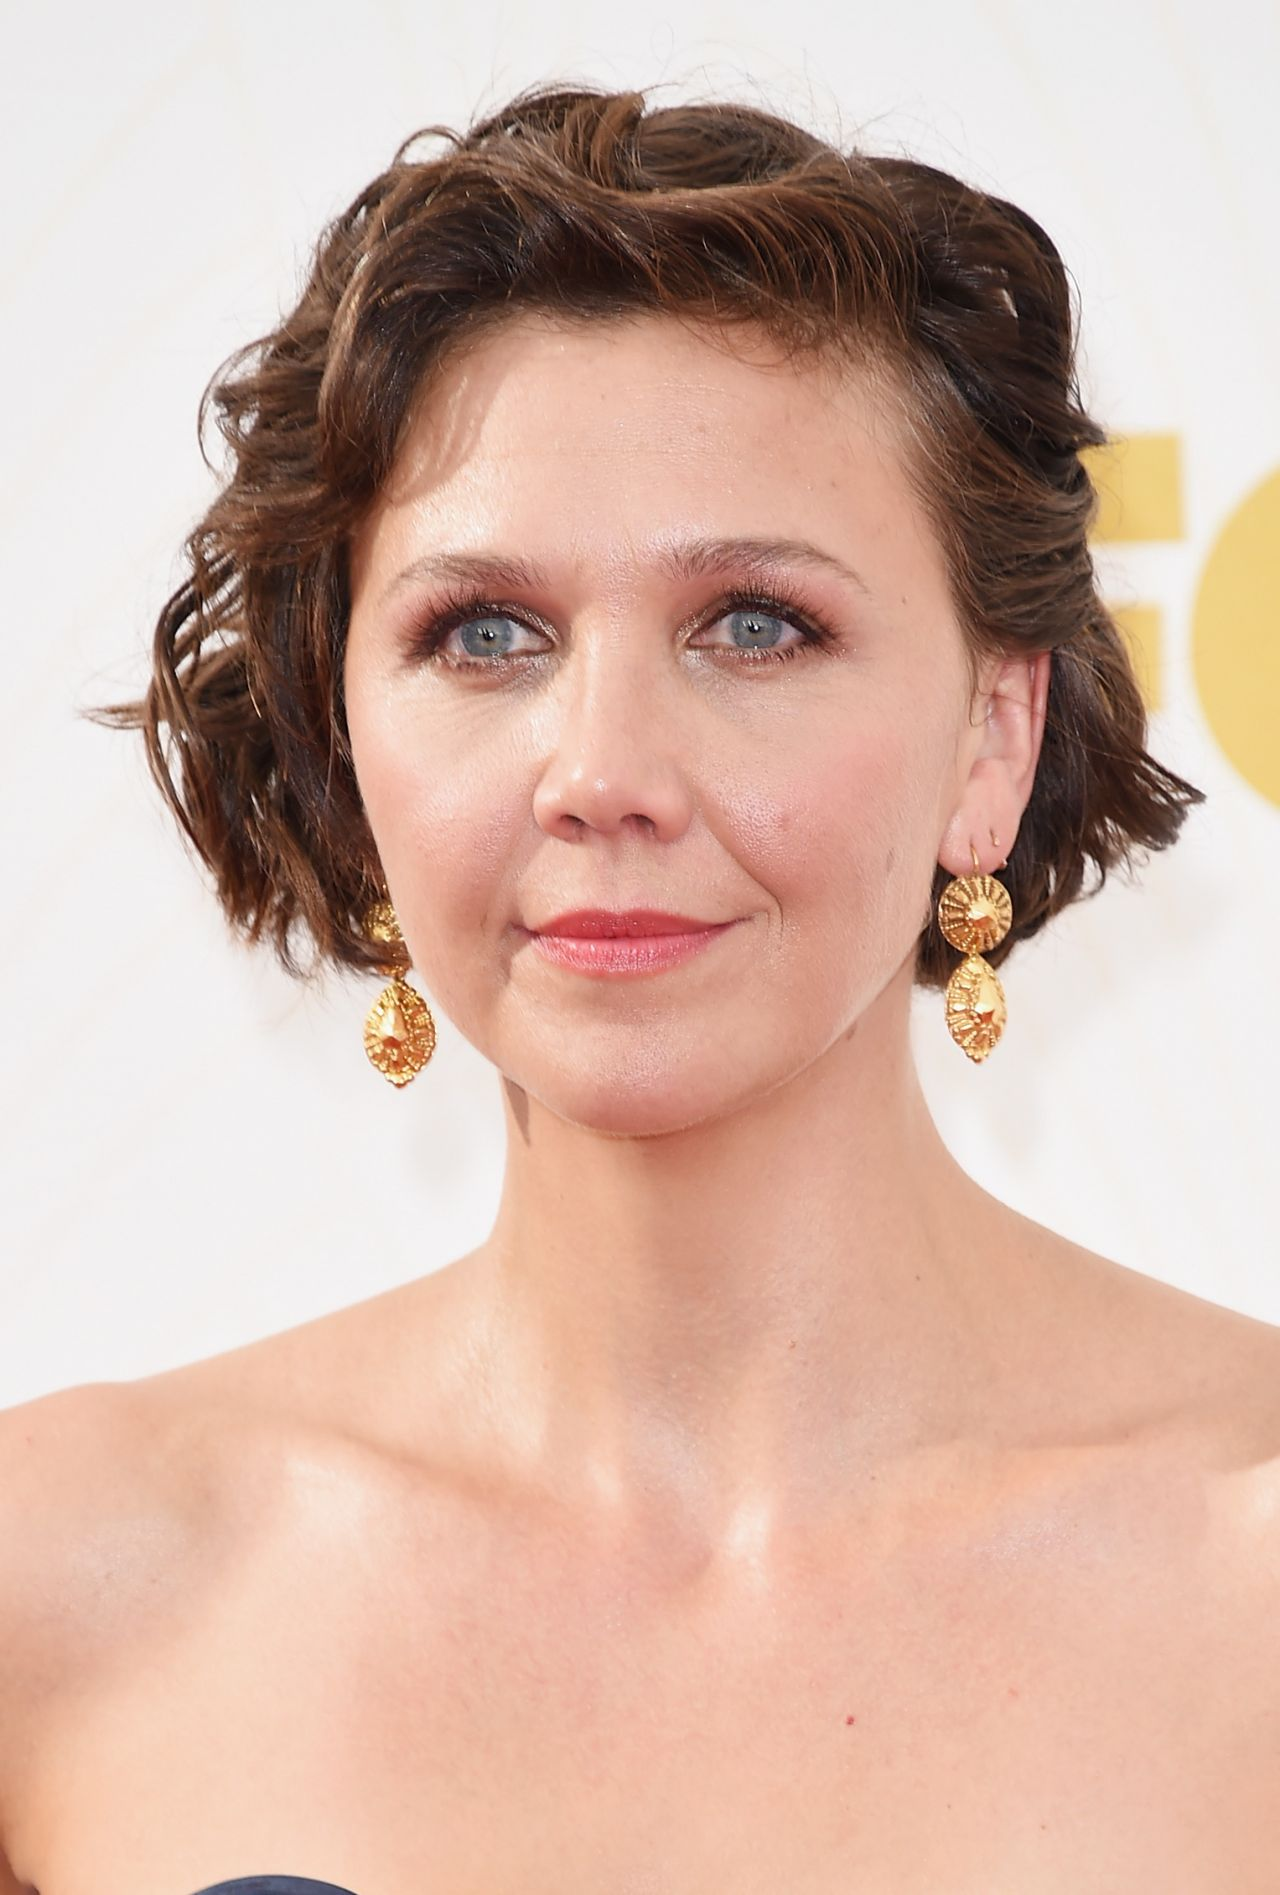 Maggie gyllenhaal ugly daughter